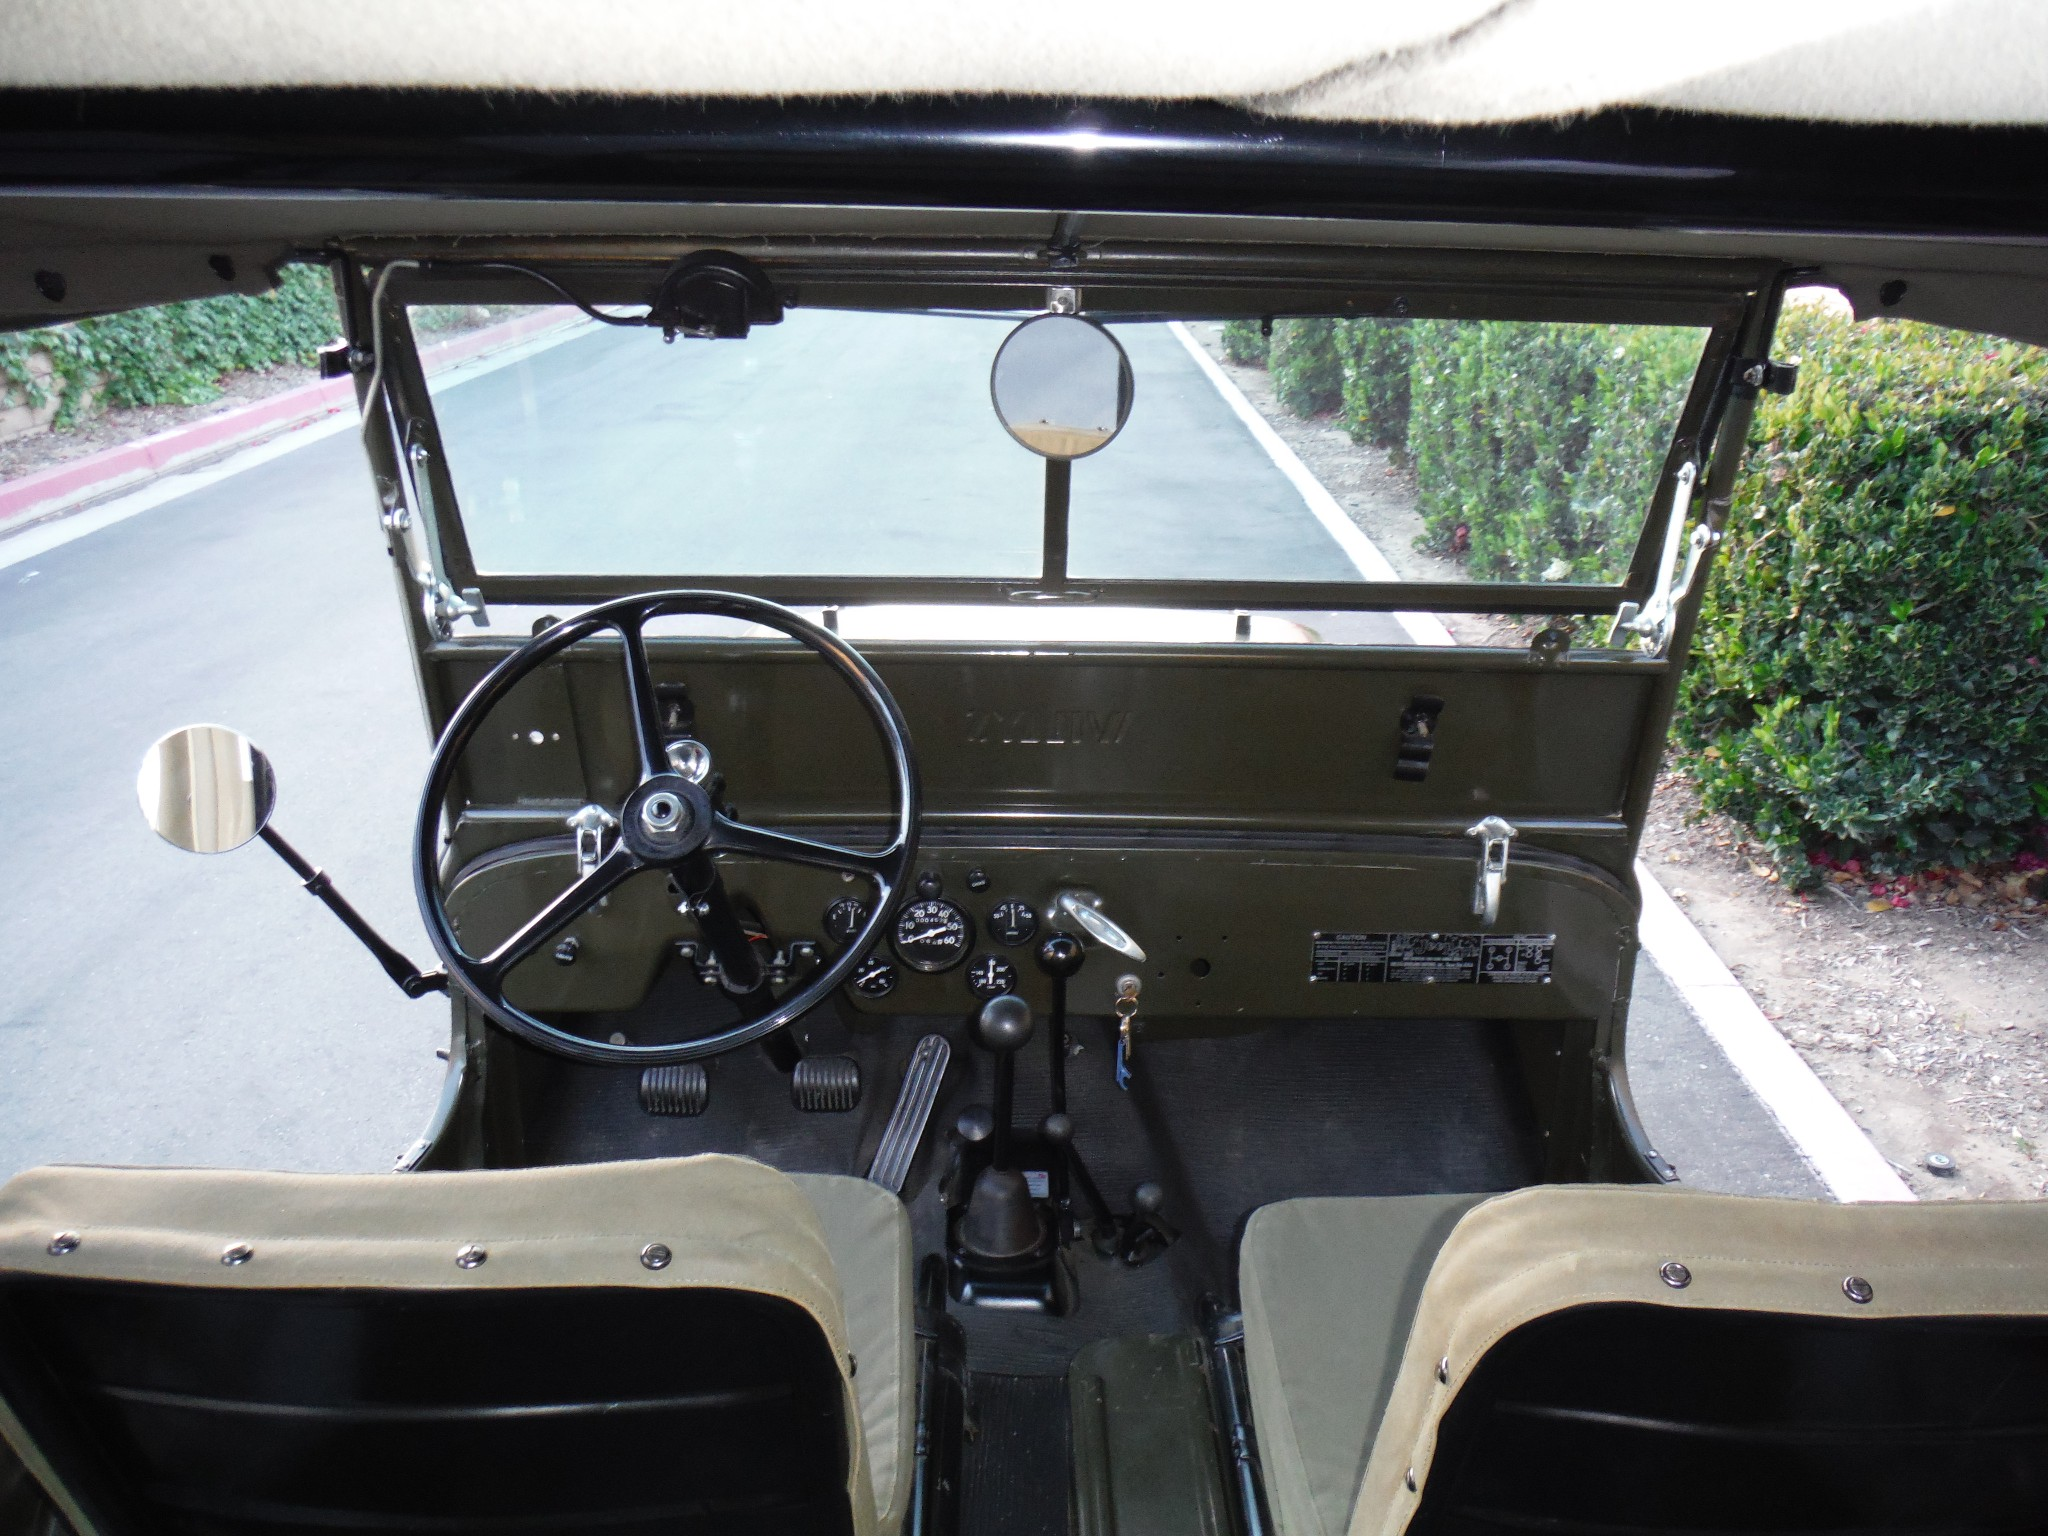 The additional levers include the control for the Warn overdrive.